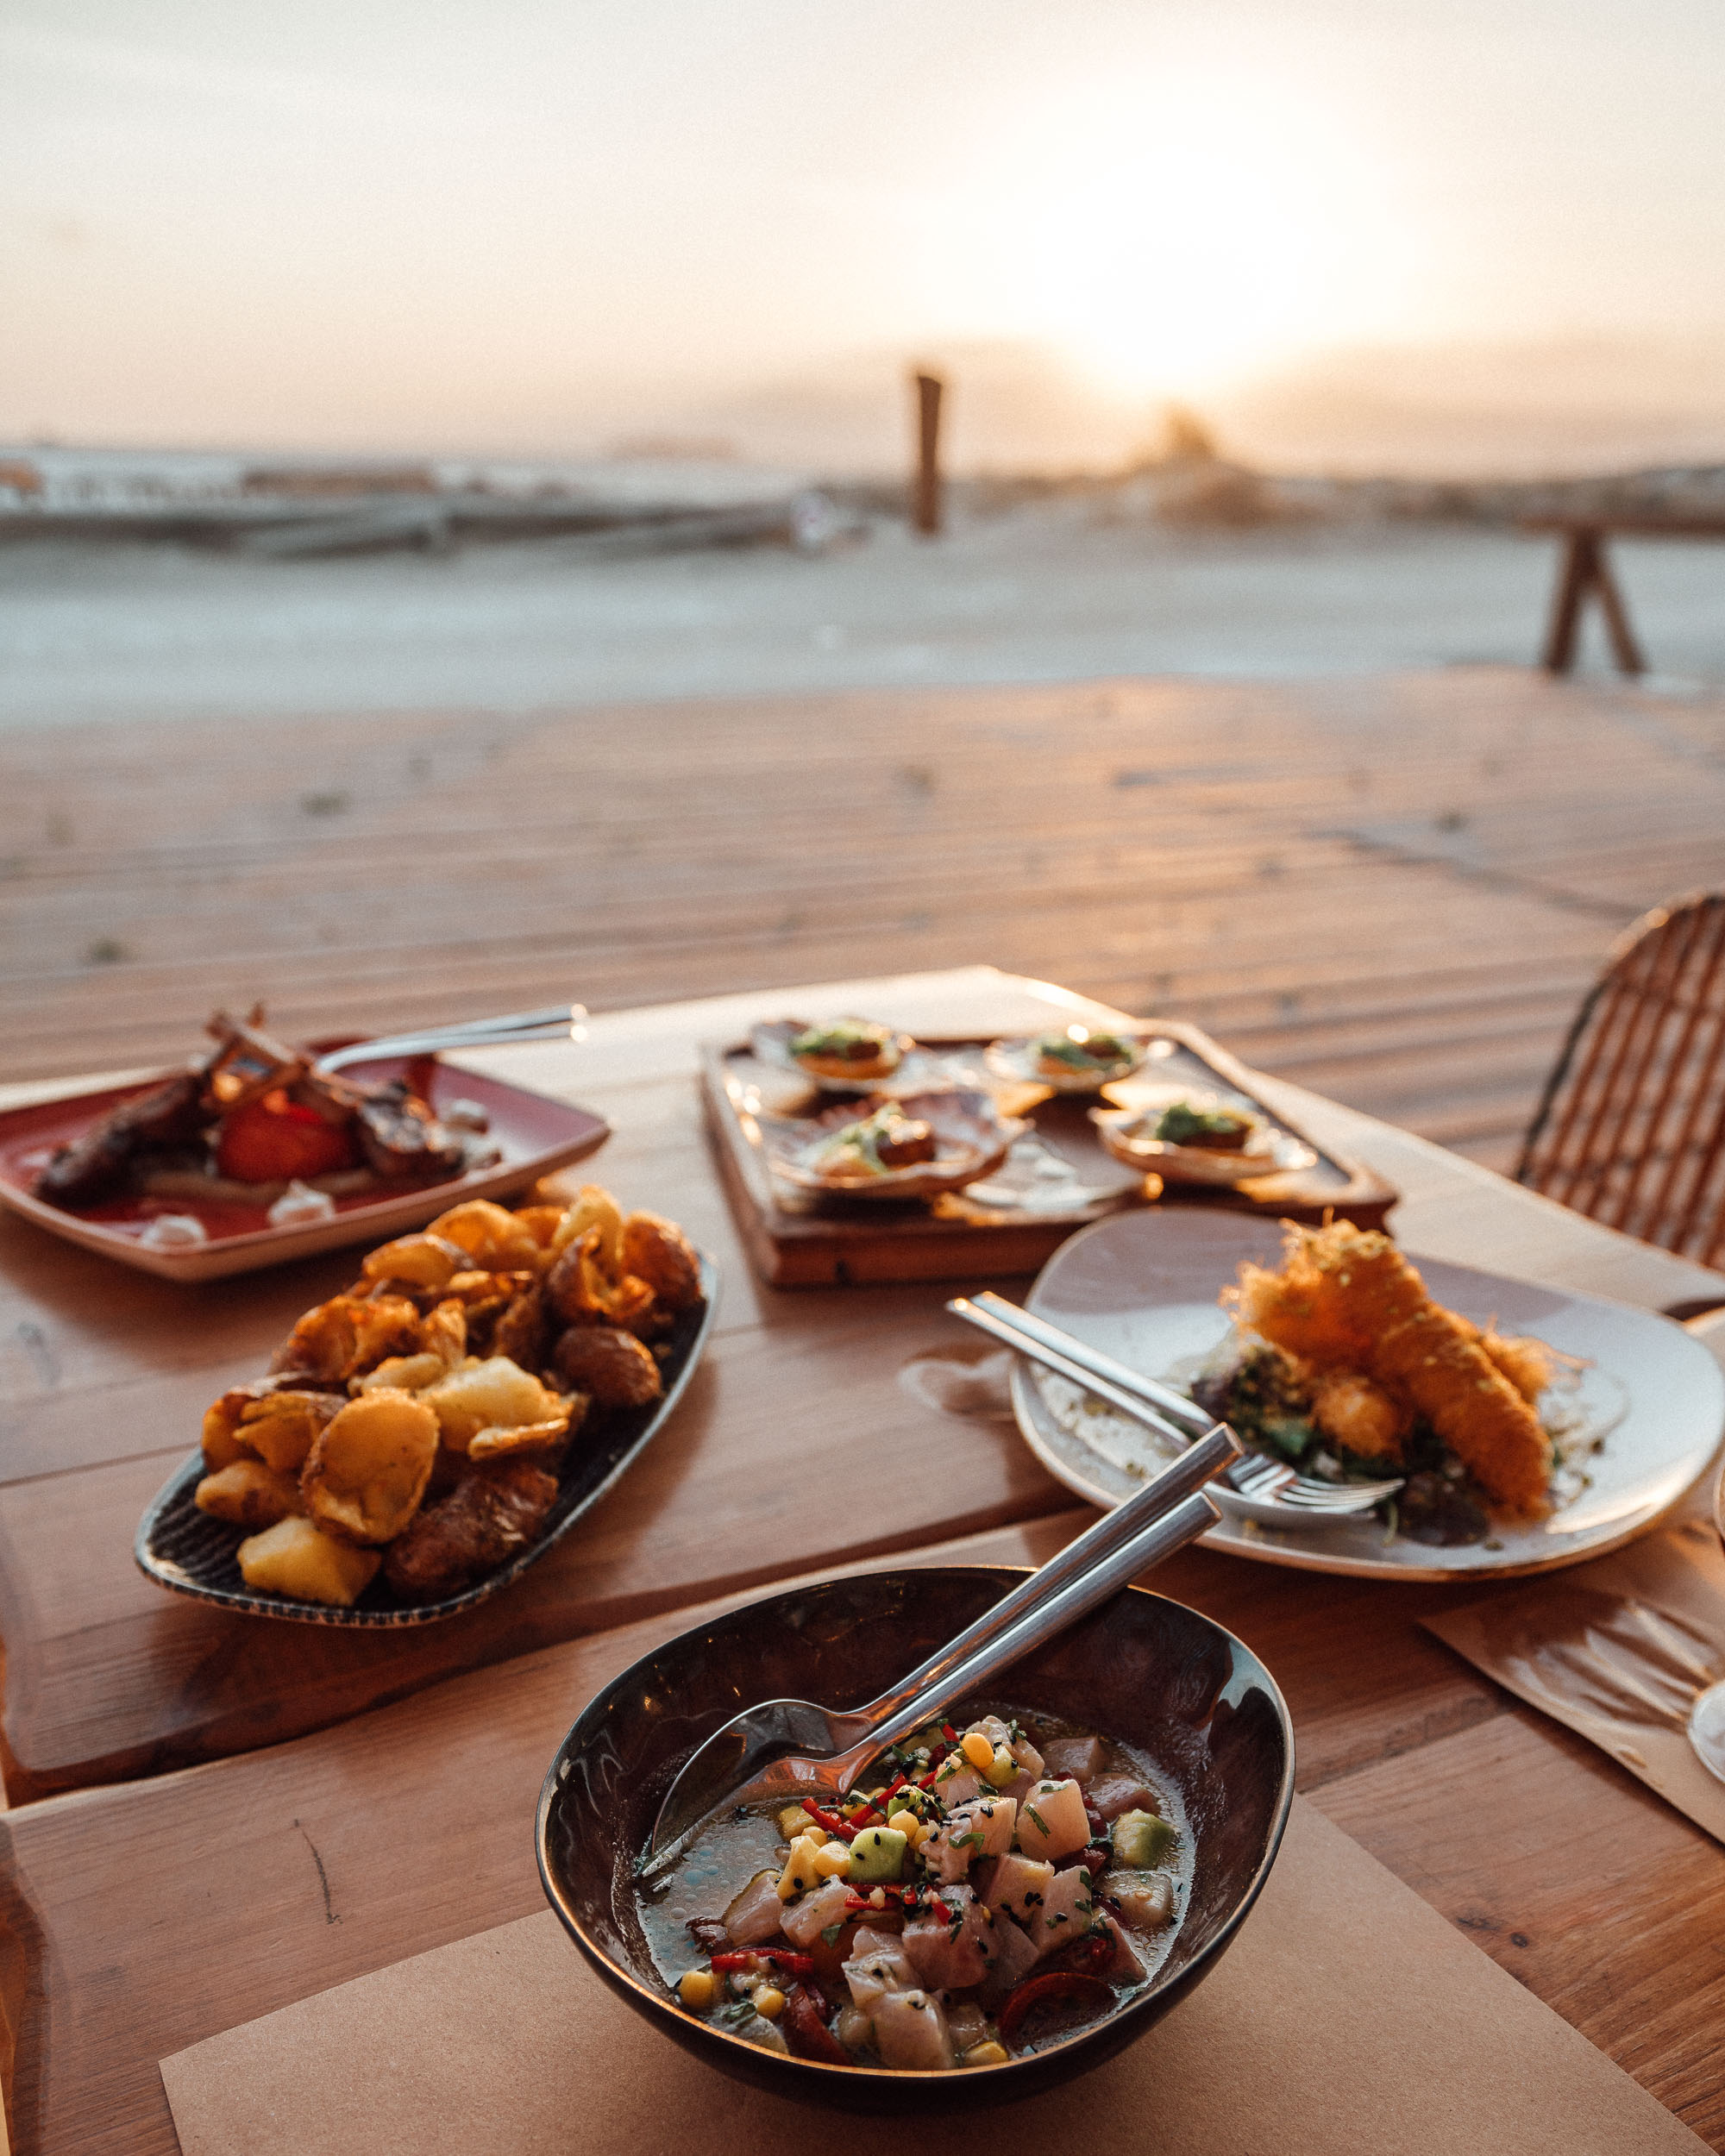 Tortuga restaurant in Naxos, Greek Islands via @finduslost